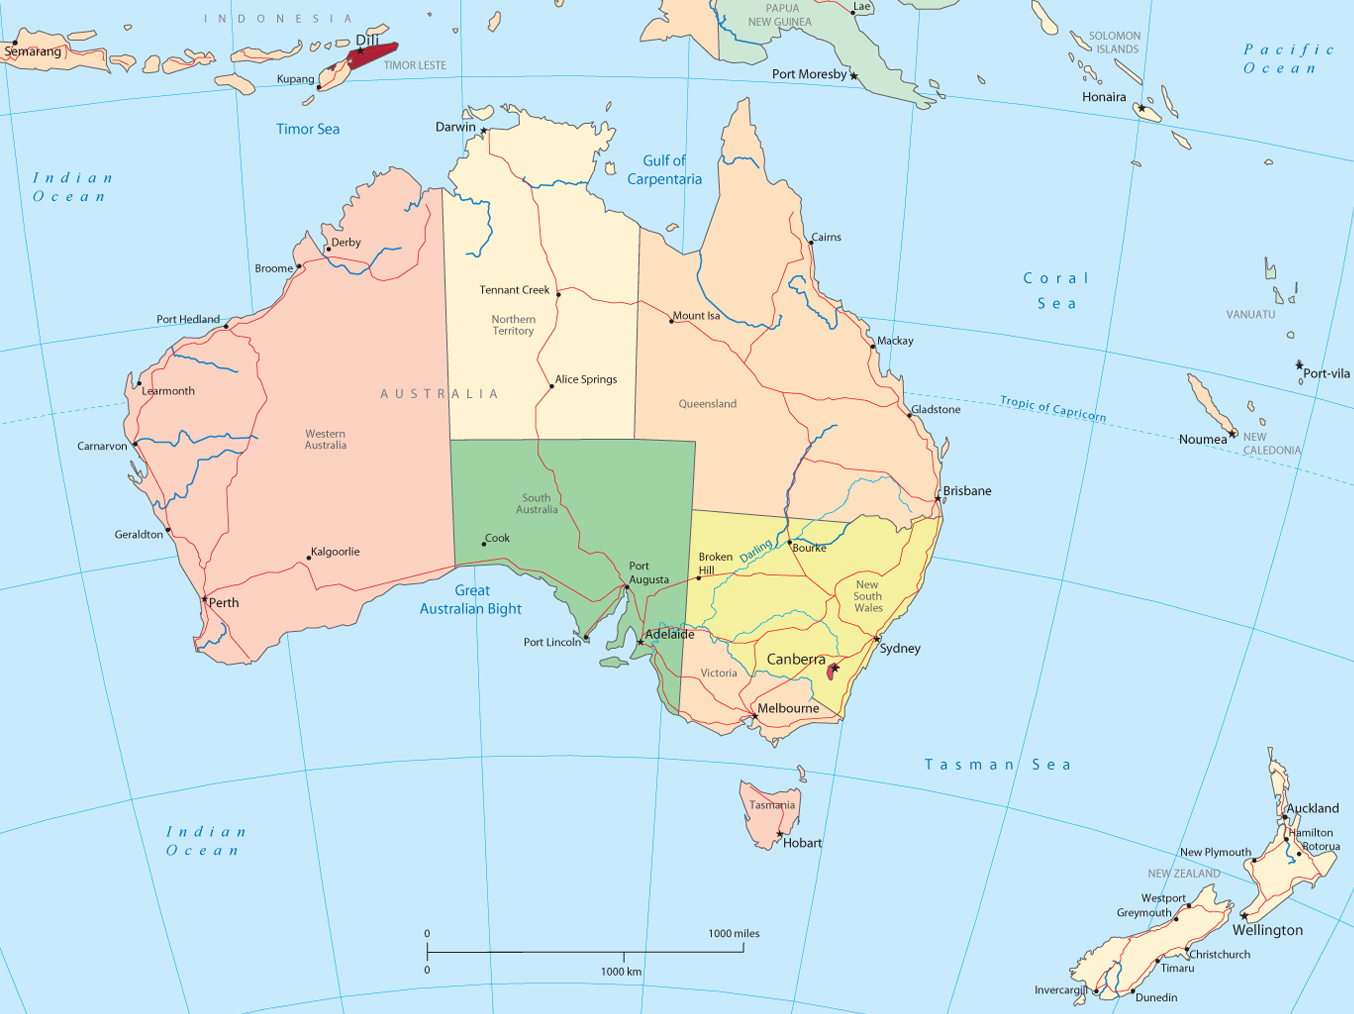 Australia And New Zealand Political Map - Australia political map